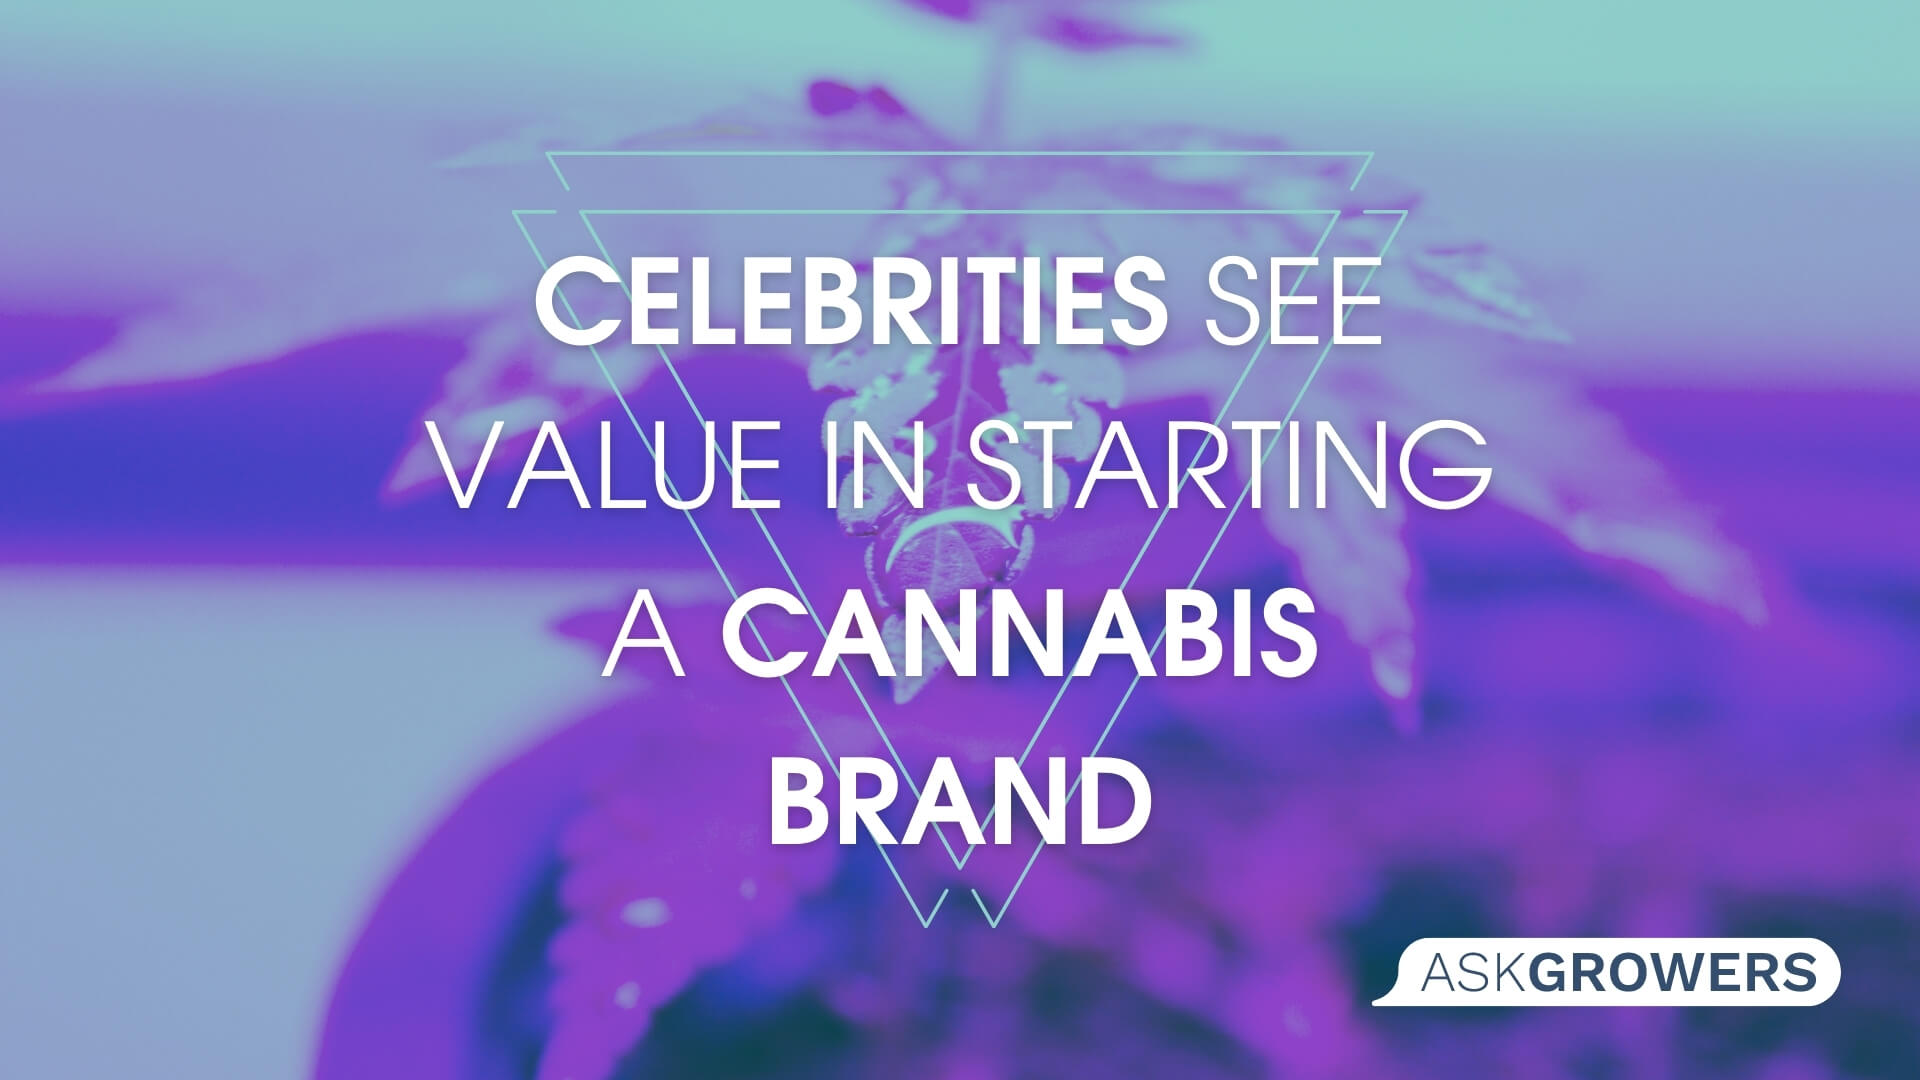 Why Do Celebrities See Value in Building Their Cannabis Brand?, AskGrowers